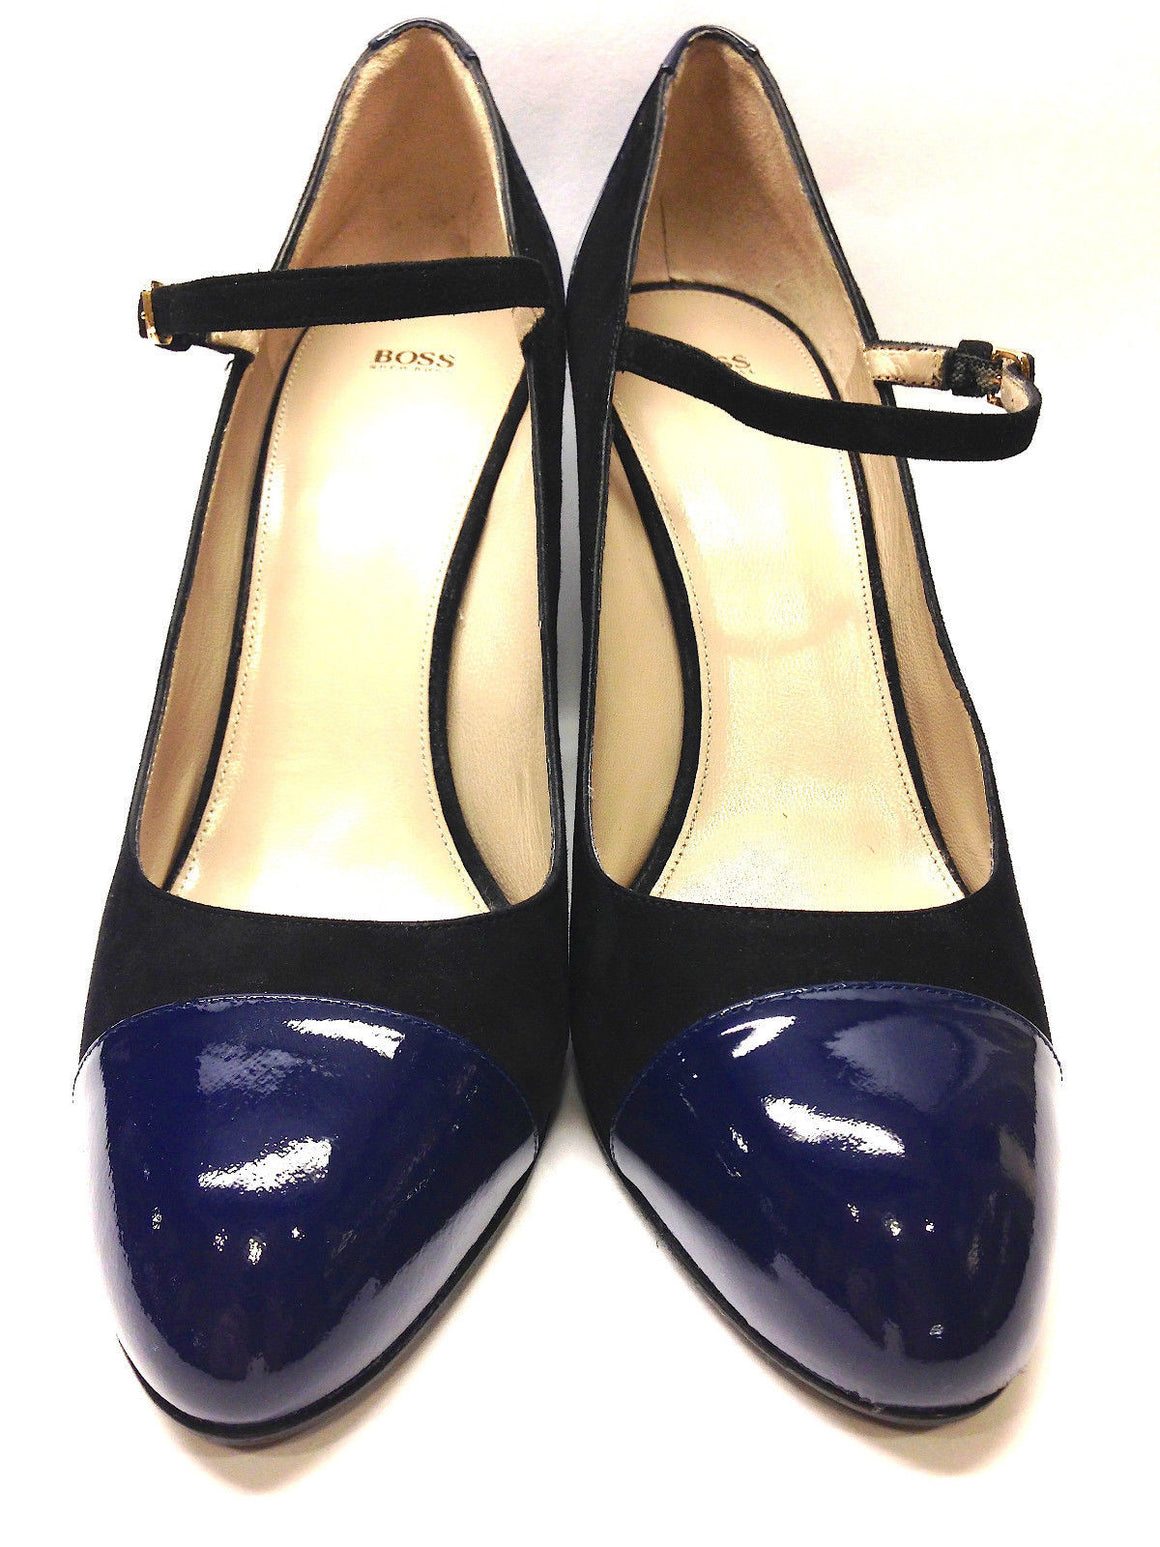 bisbiz.com HUGO BOSS  Black Suede Navy Patent Leather Classic Mary Jane Heel Pumps - Bis Luxury Resale